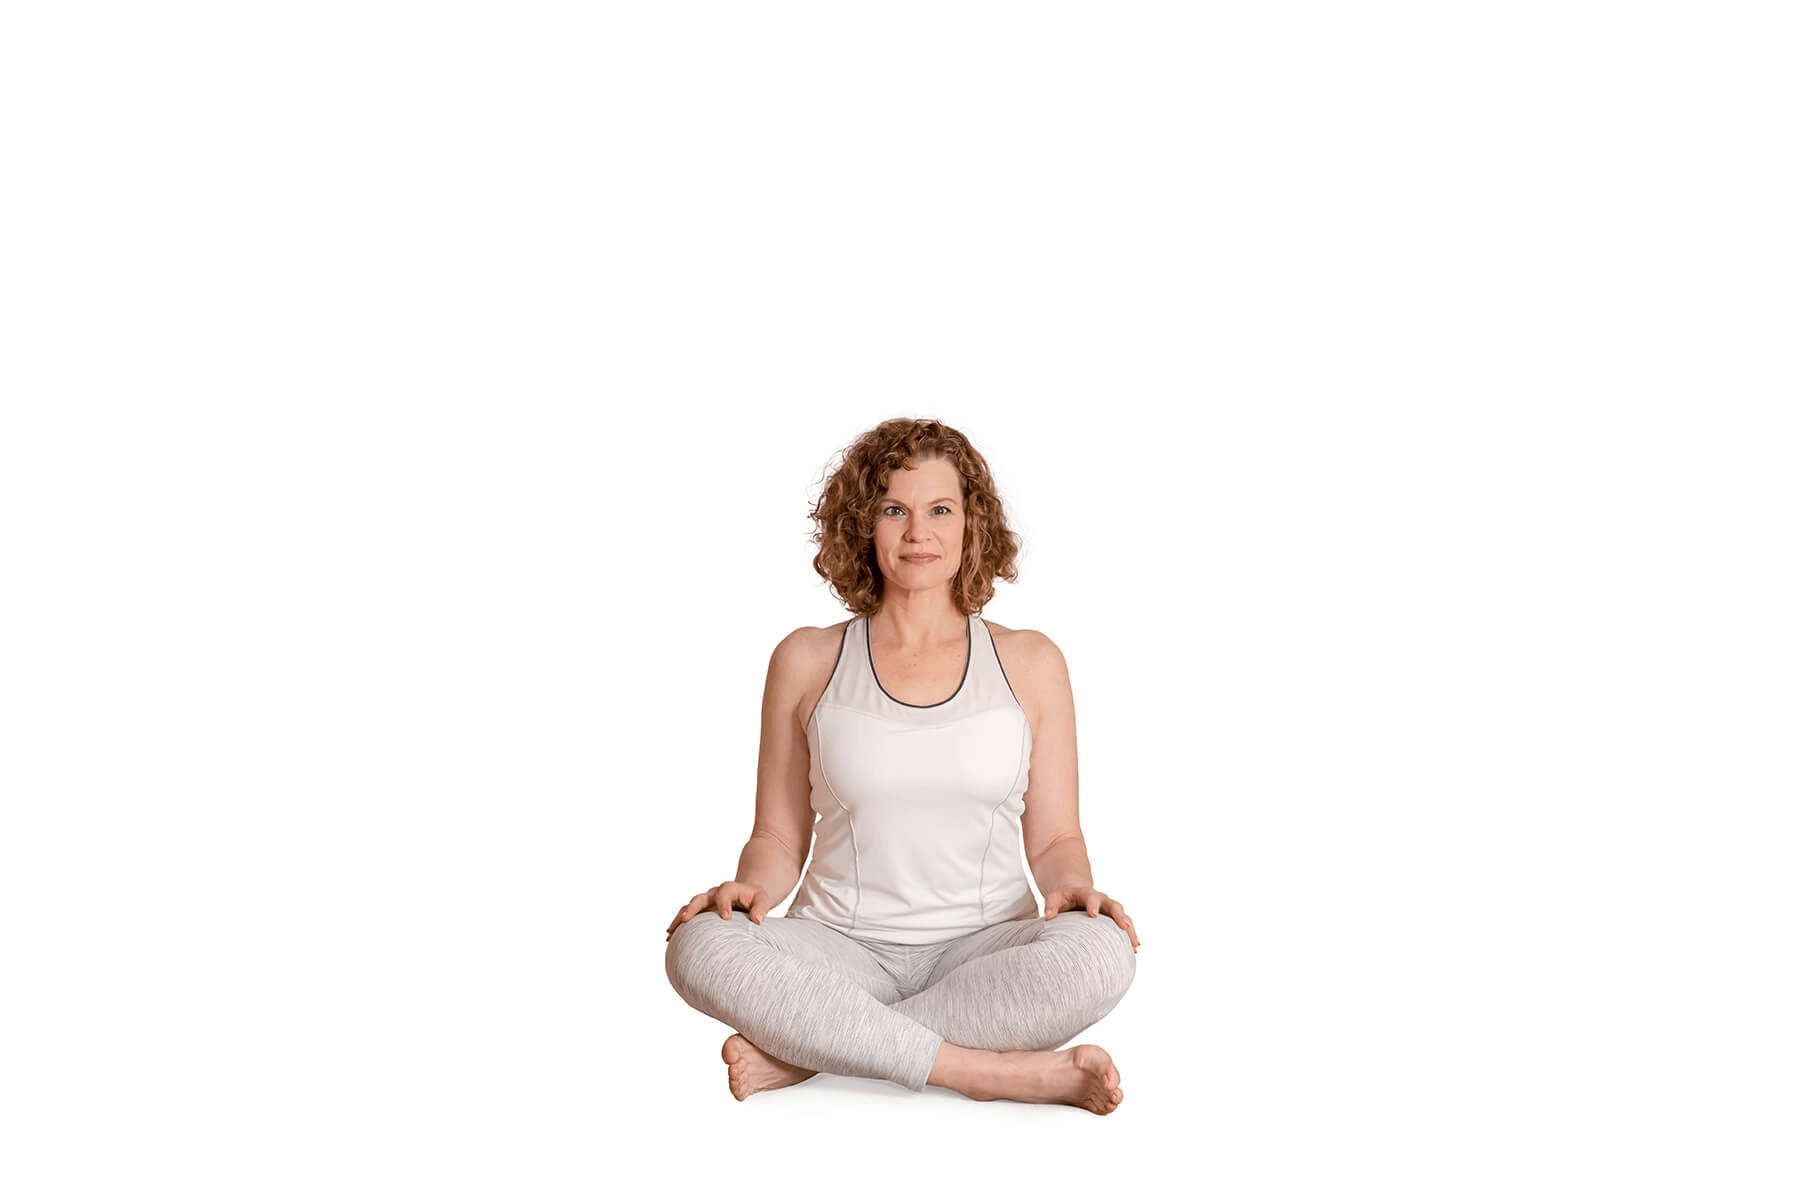 barrie risman in simple seated position yoga